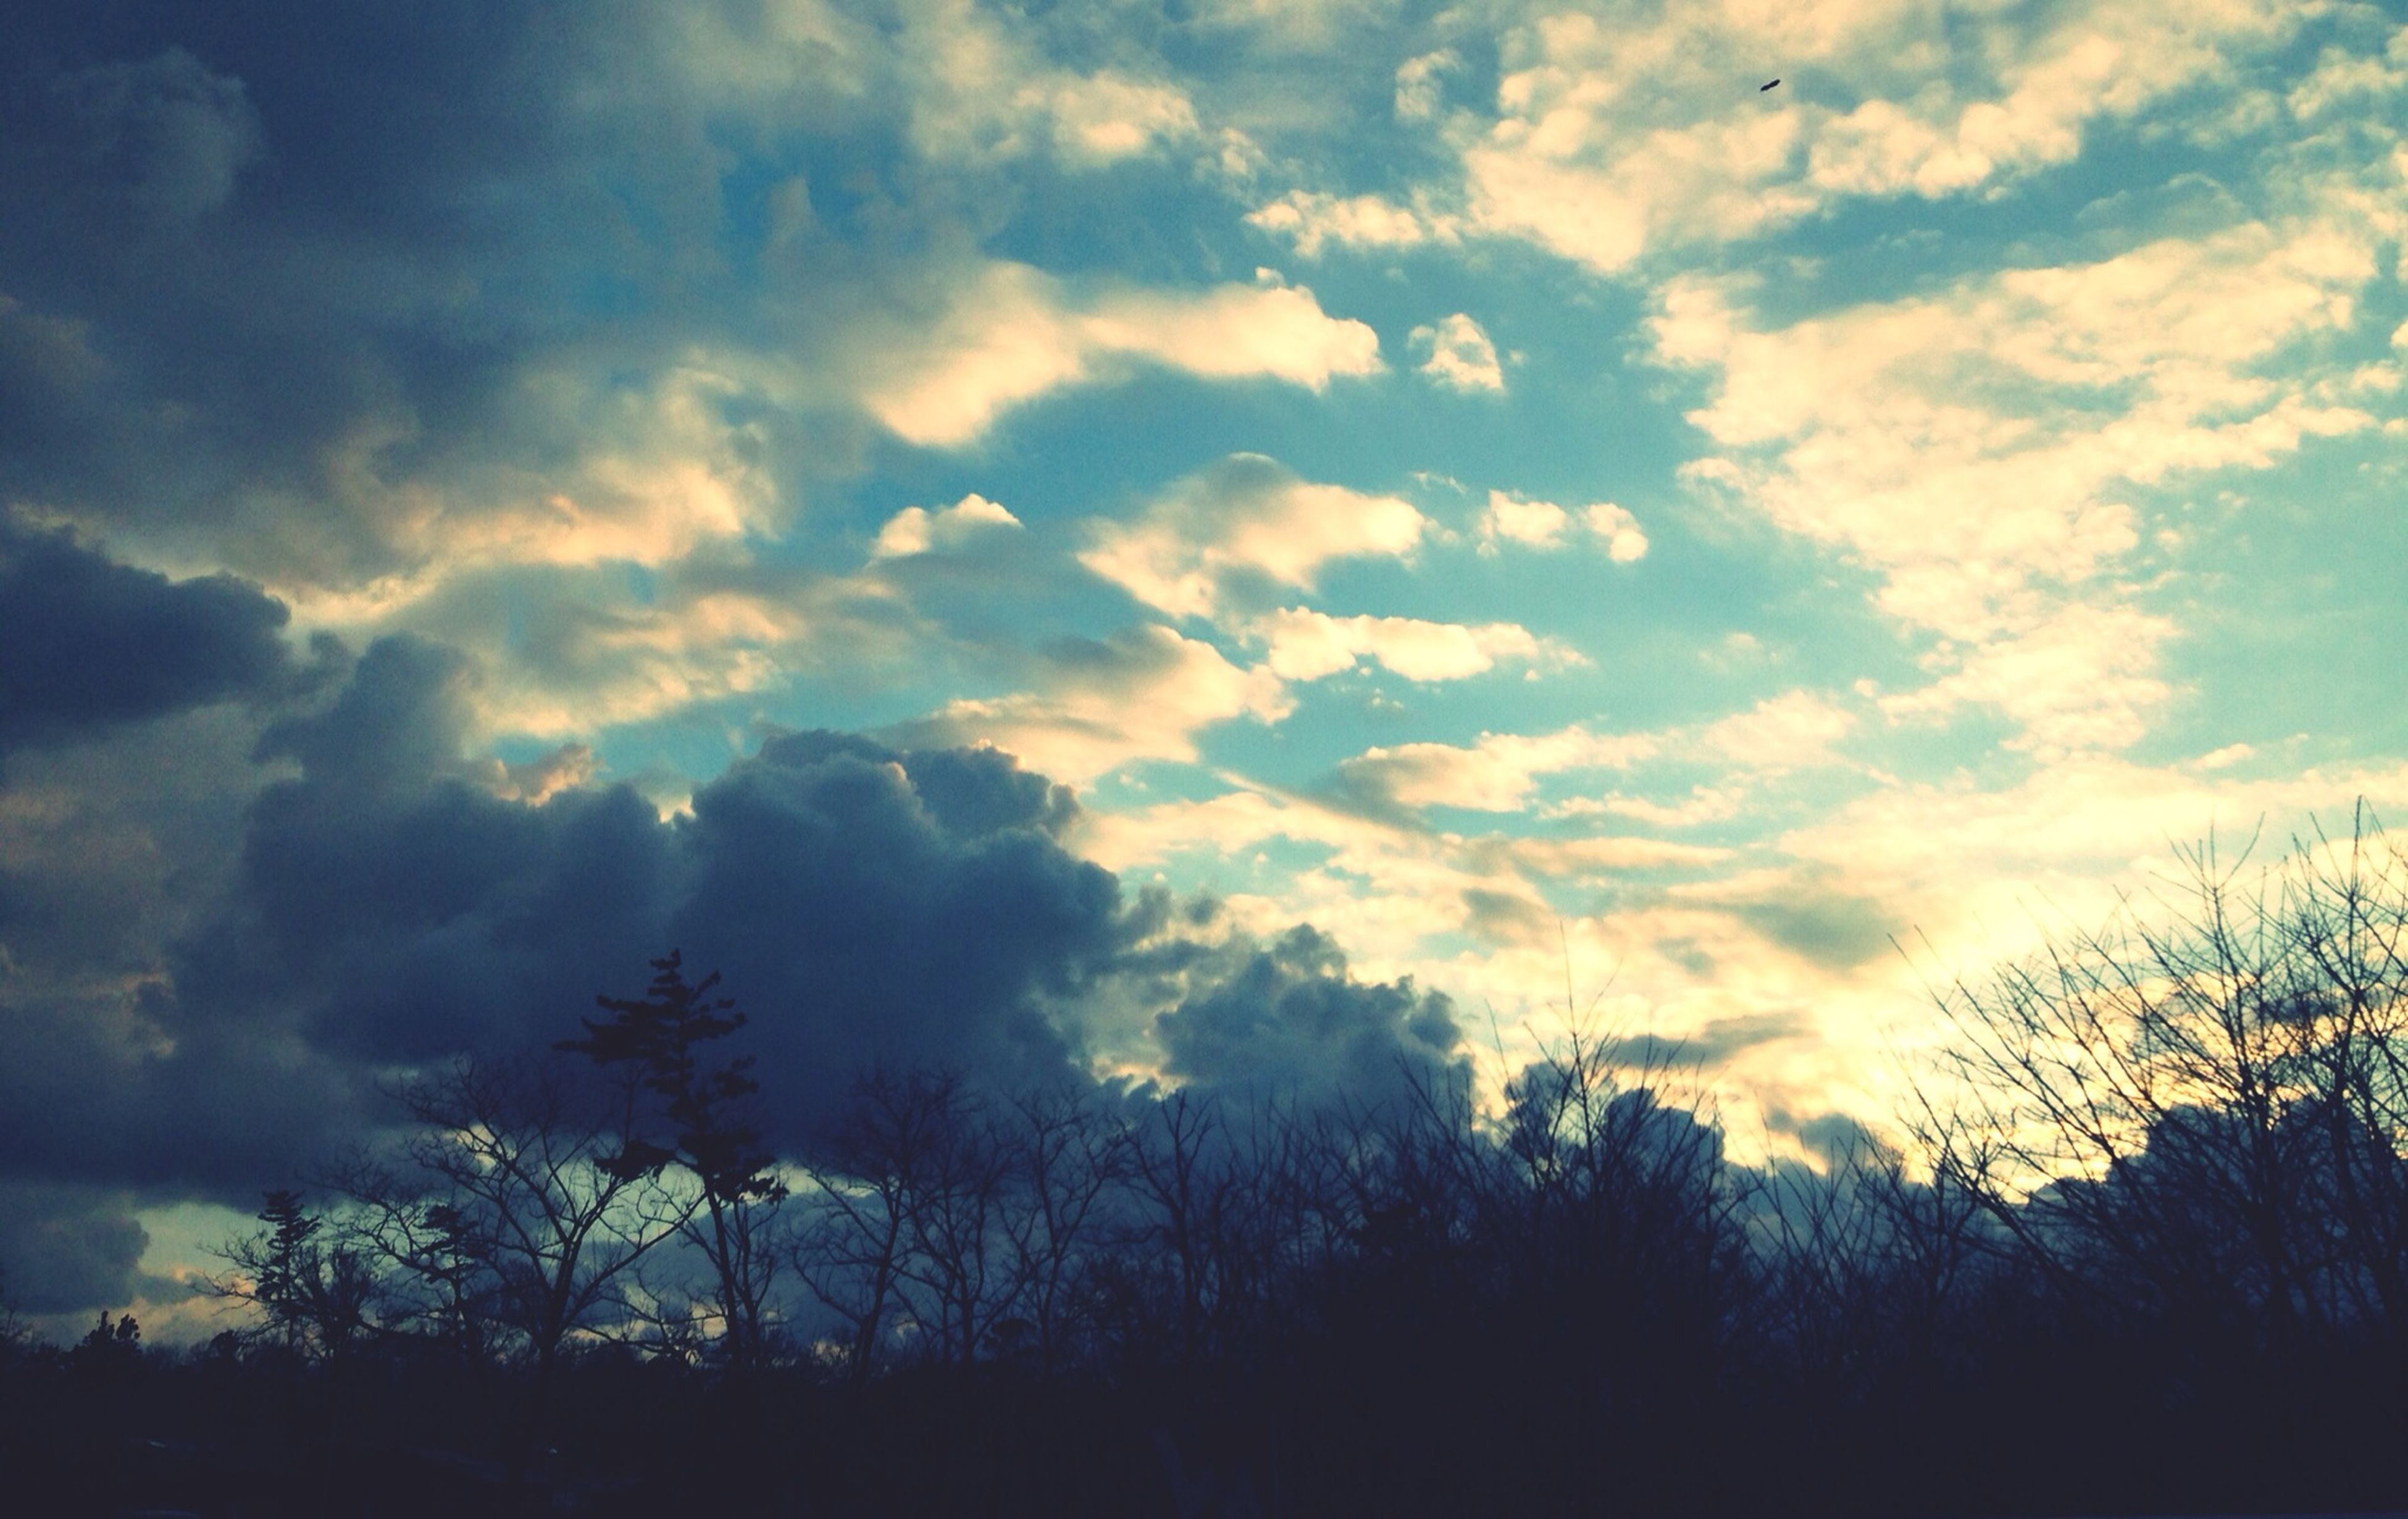 silhouette, sky, tree, tranquility, cloud - sky, tranquil scene, beauty in nature, scenics, low angle view, nature, cloudy, cloud, sunset, idyllic, growth, outdoors, no people, dusk, non-urban scene, landscape